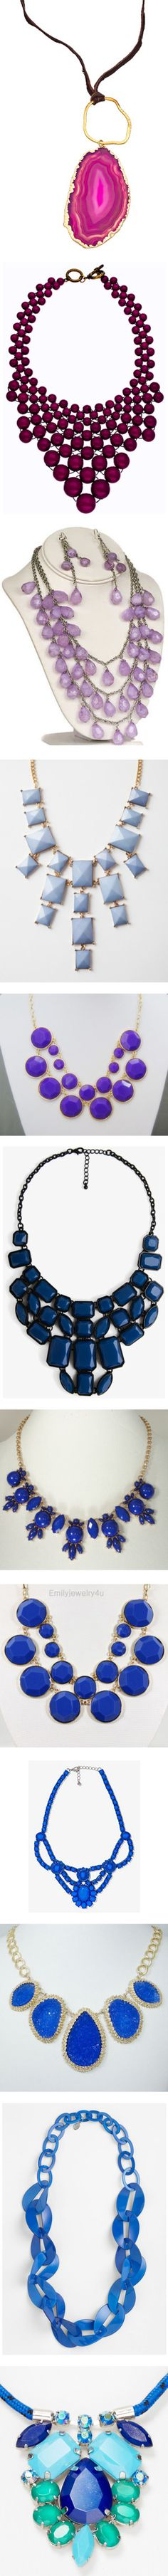 """Colored Statement Necklaces Under $50"" by dana-forlano on Polyvore"